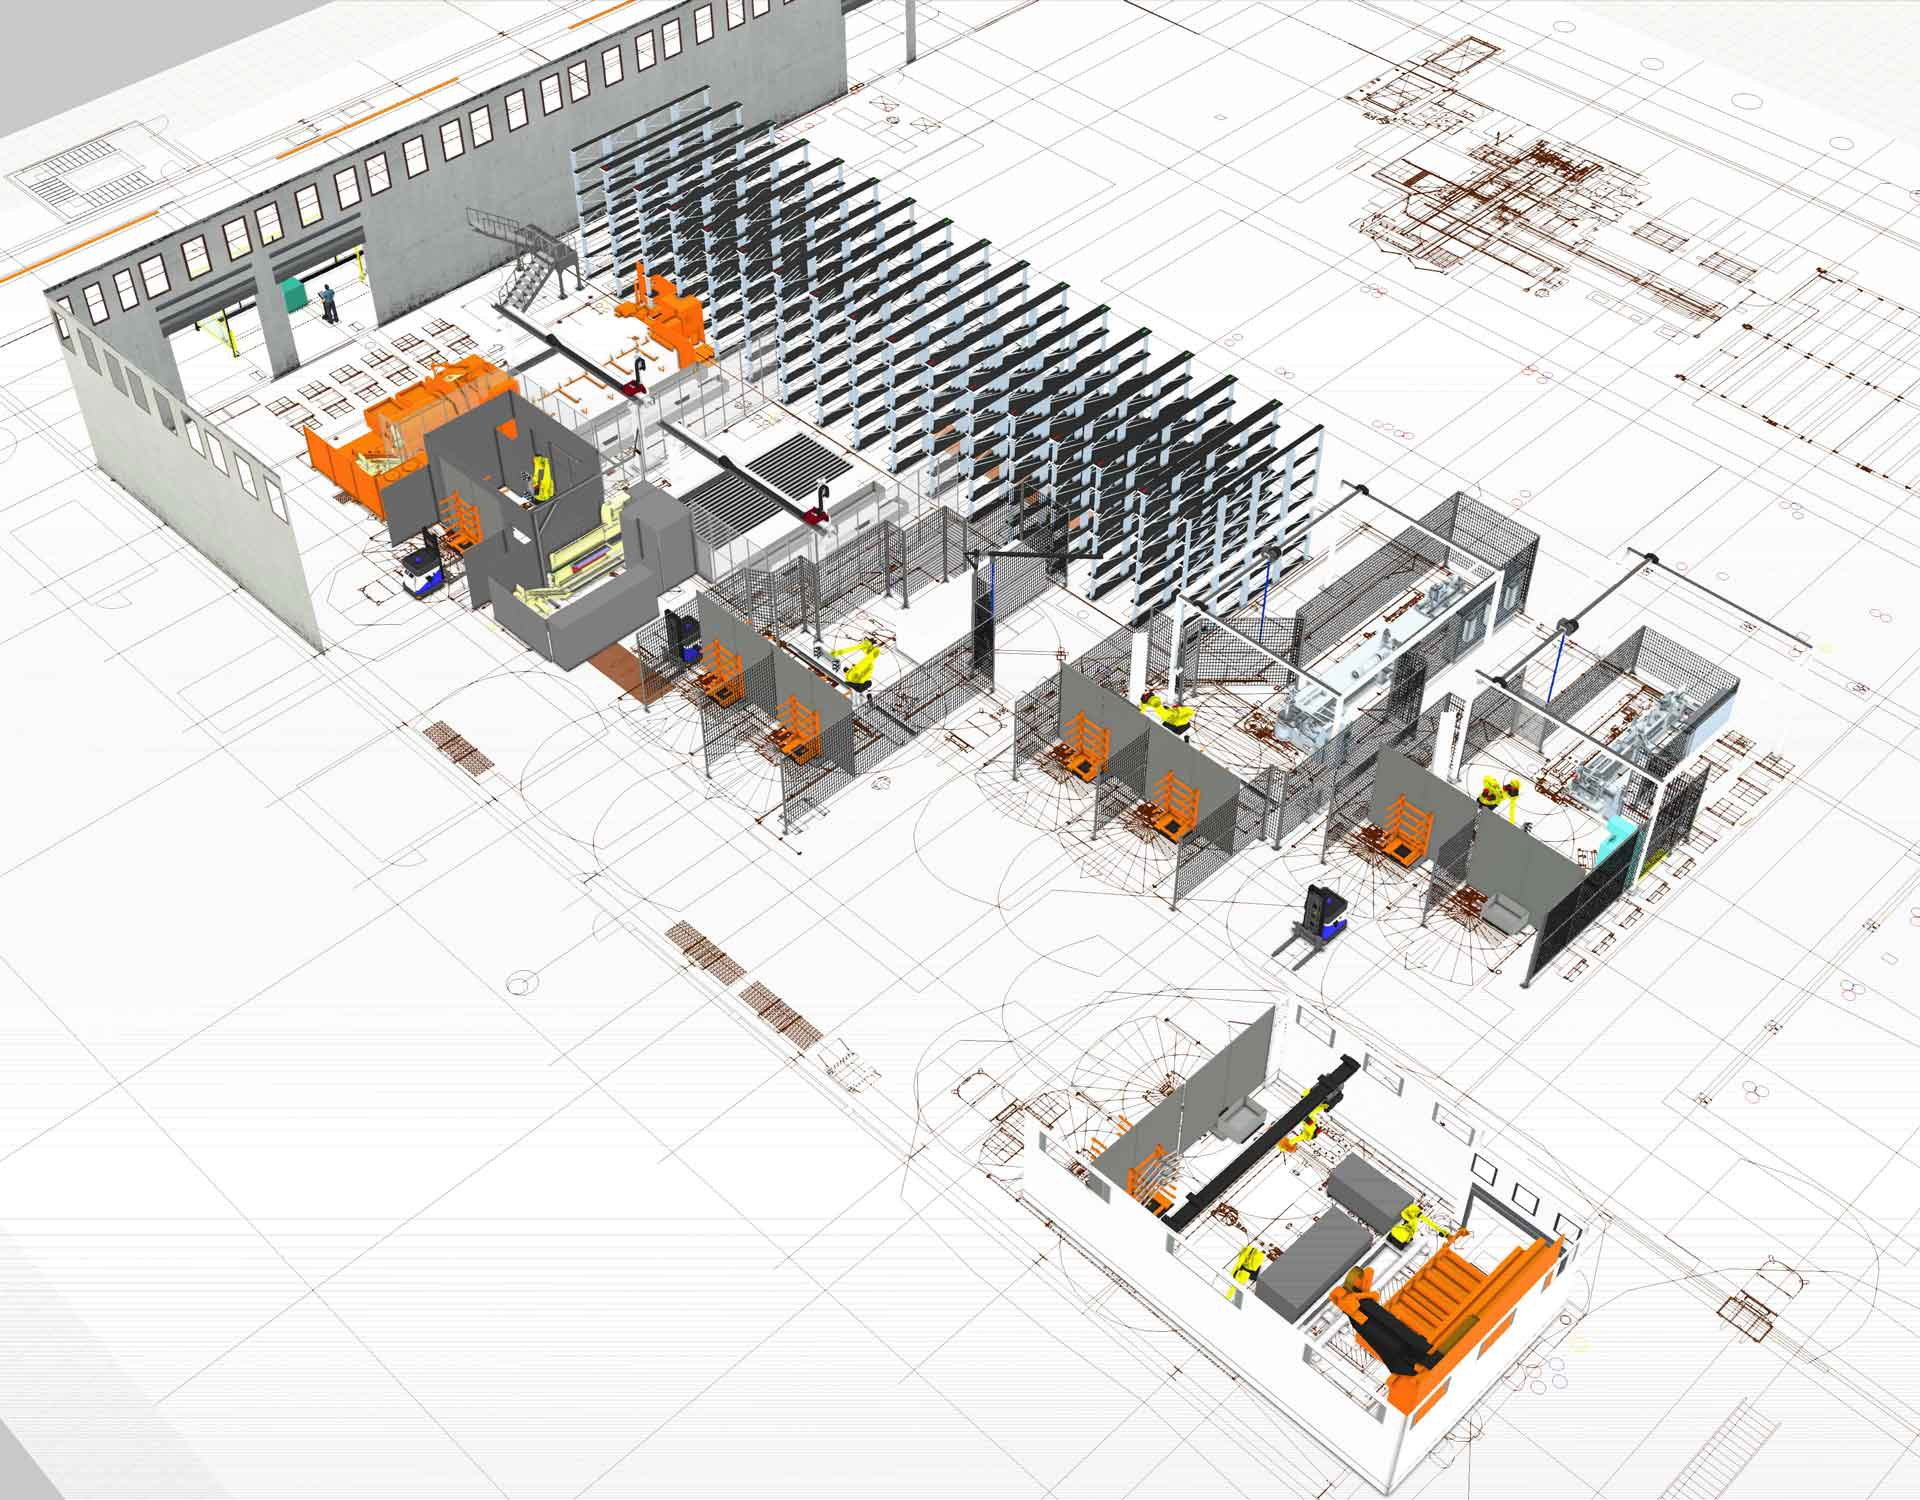 A Visual Components simulation of an AGCO factory